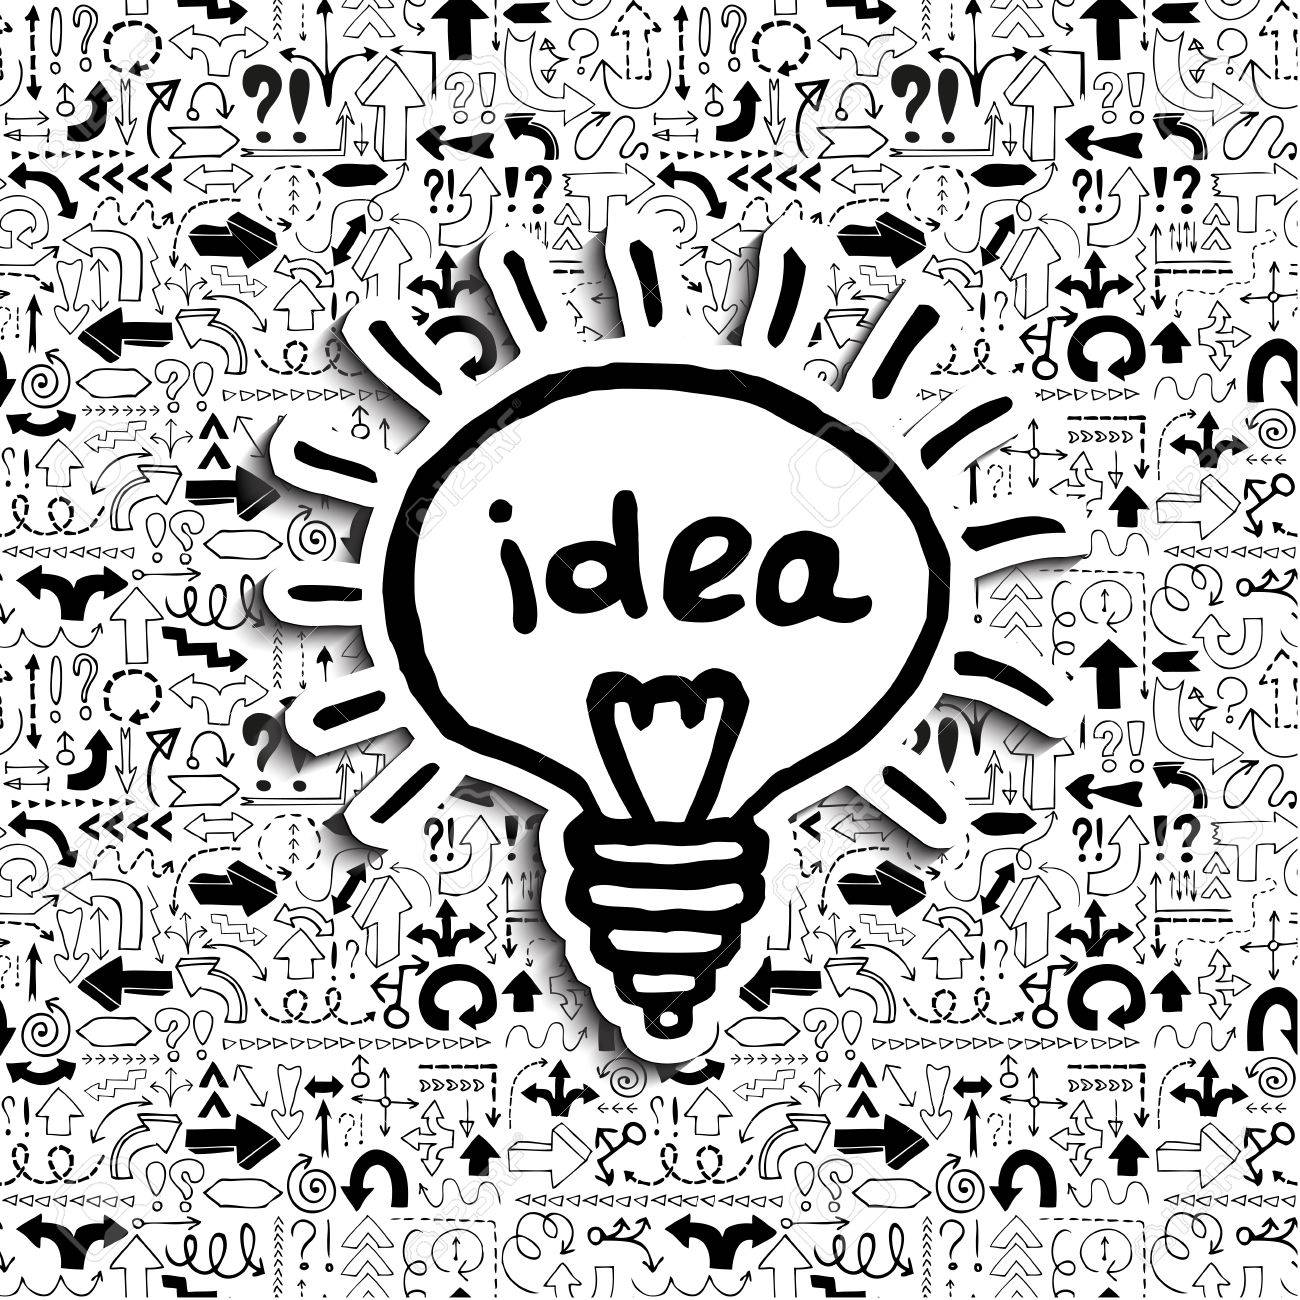 Light bulb icon Concept of a creative idea in a situation of uncertainty - 29673121